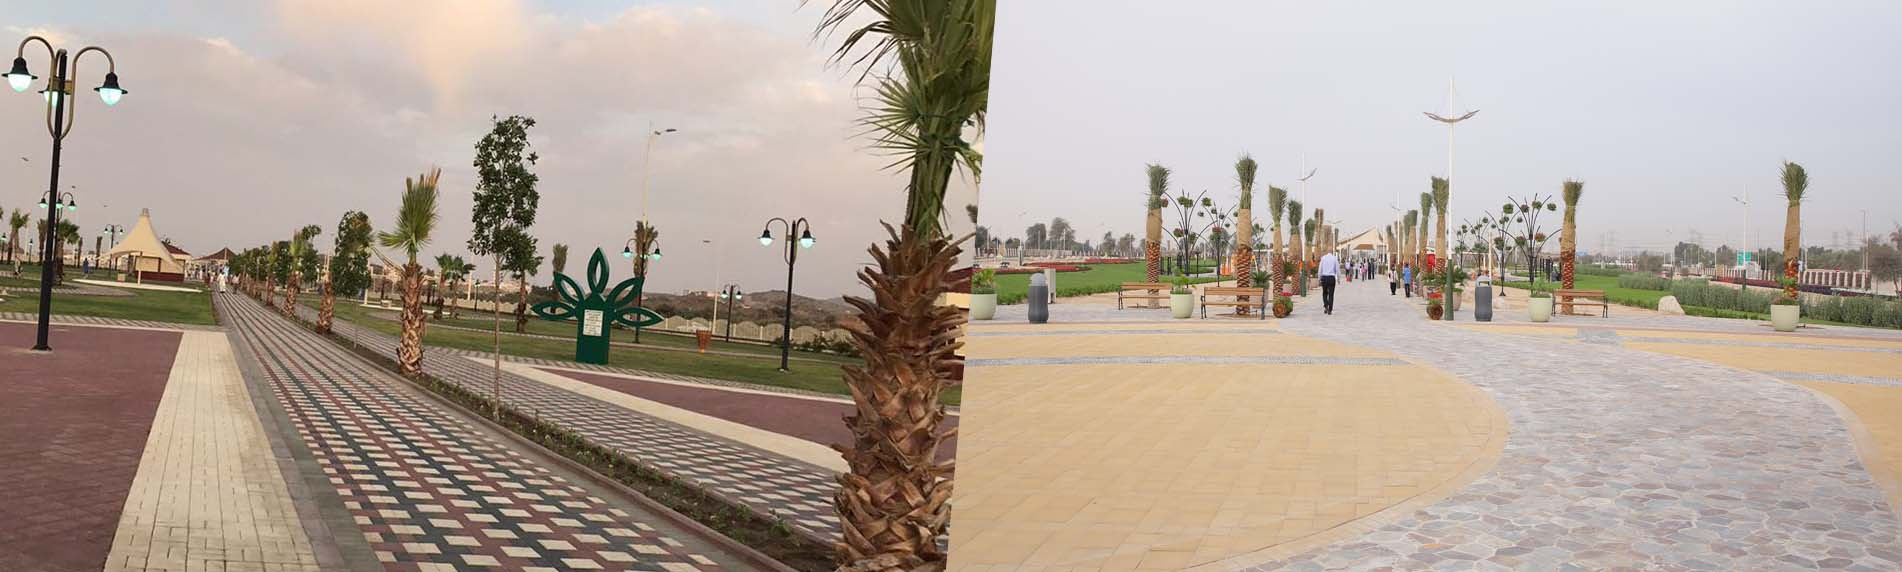 palm-oasis-park-frontimg.jpg